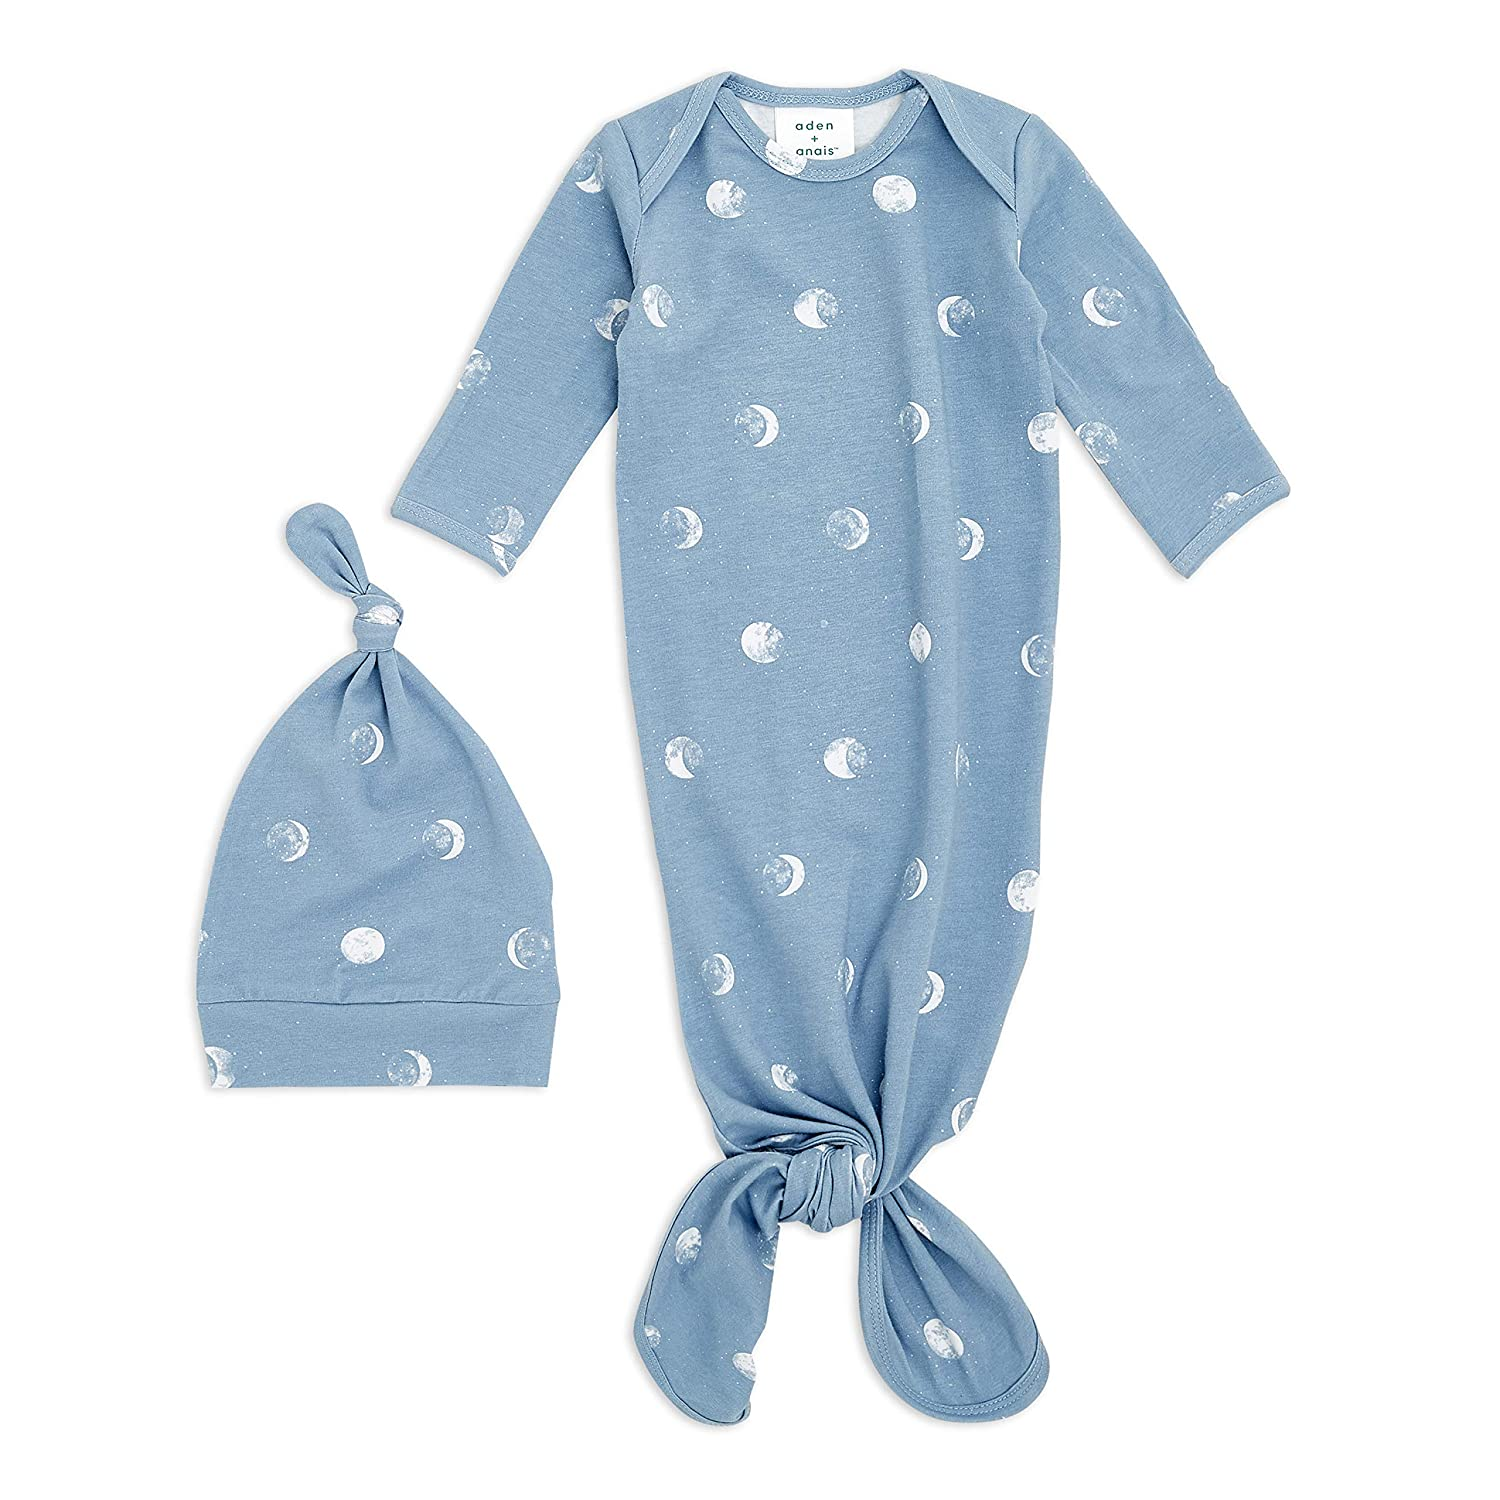 Super Soft and Stretchy Infant Gown with Mitten Cuffs aden Star anais Snuggle Knit Knotted Newborn Baby Gown and Hat Set 0-3 Months